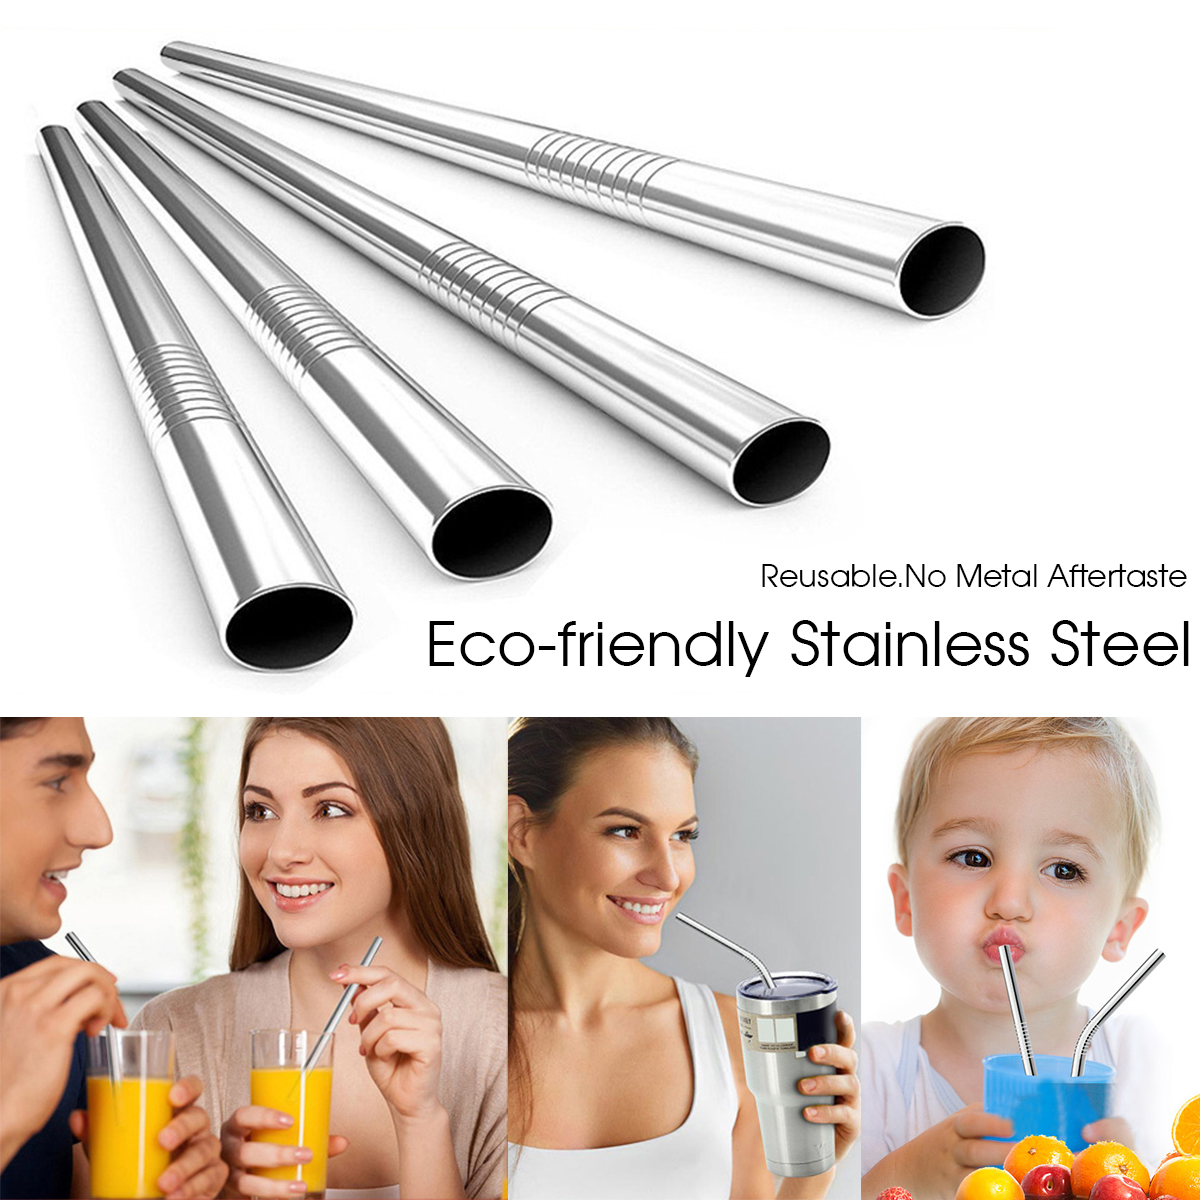 relax reusable stainless steel straw and brush set 循环使用不锈钢吸管及吸管刷